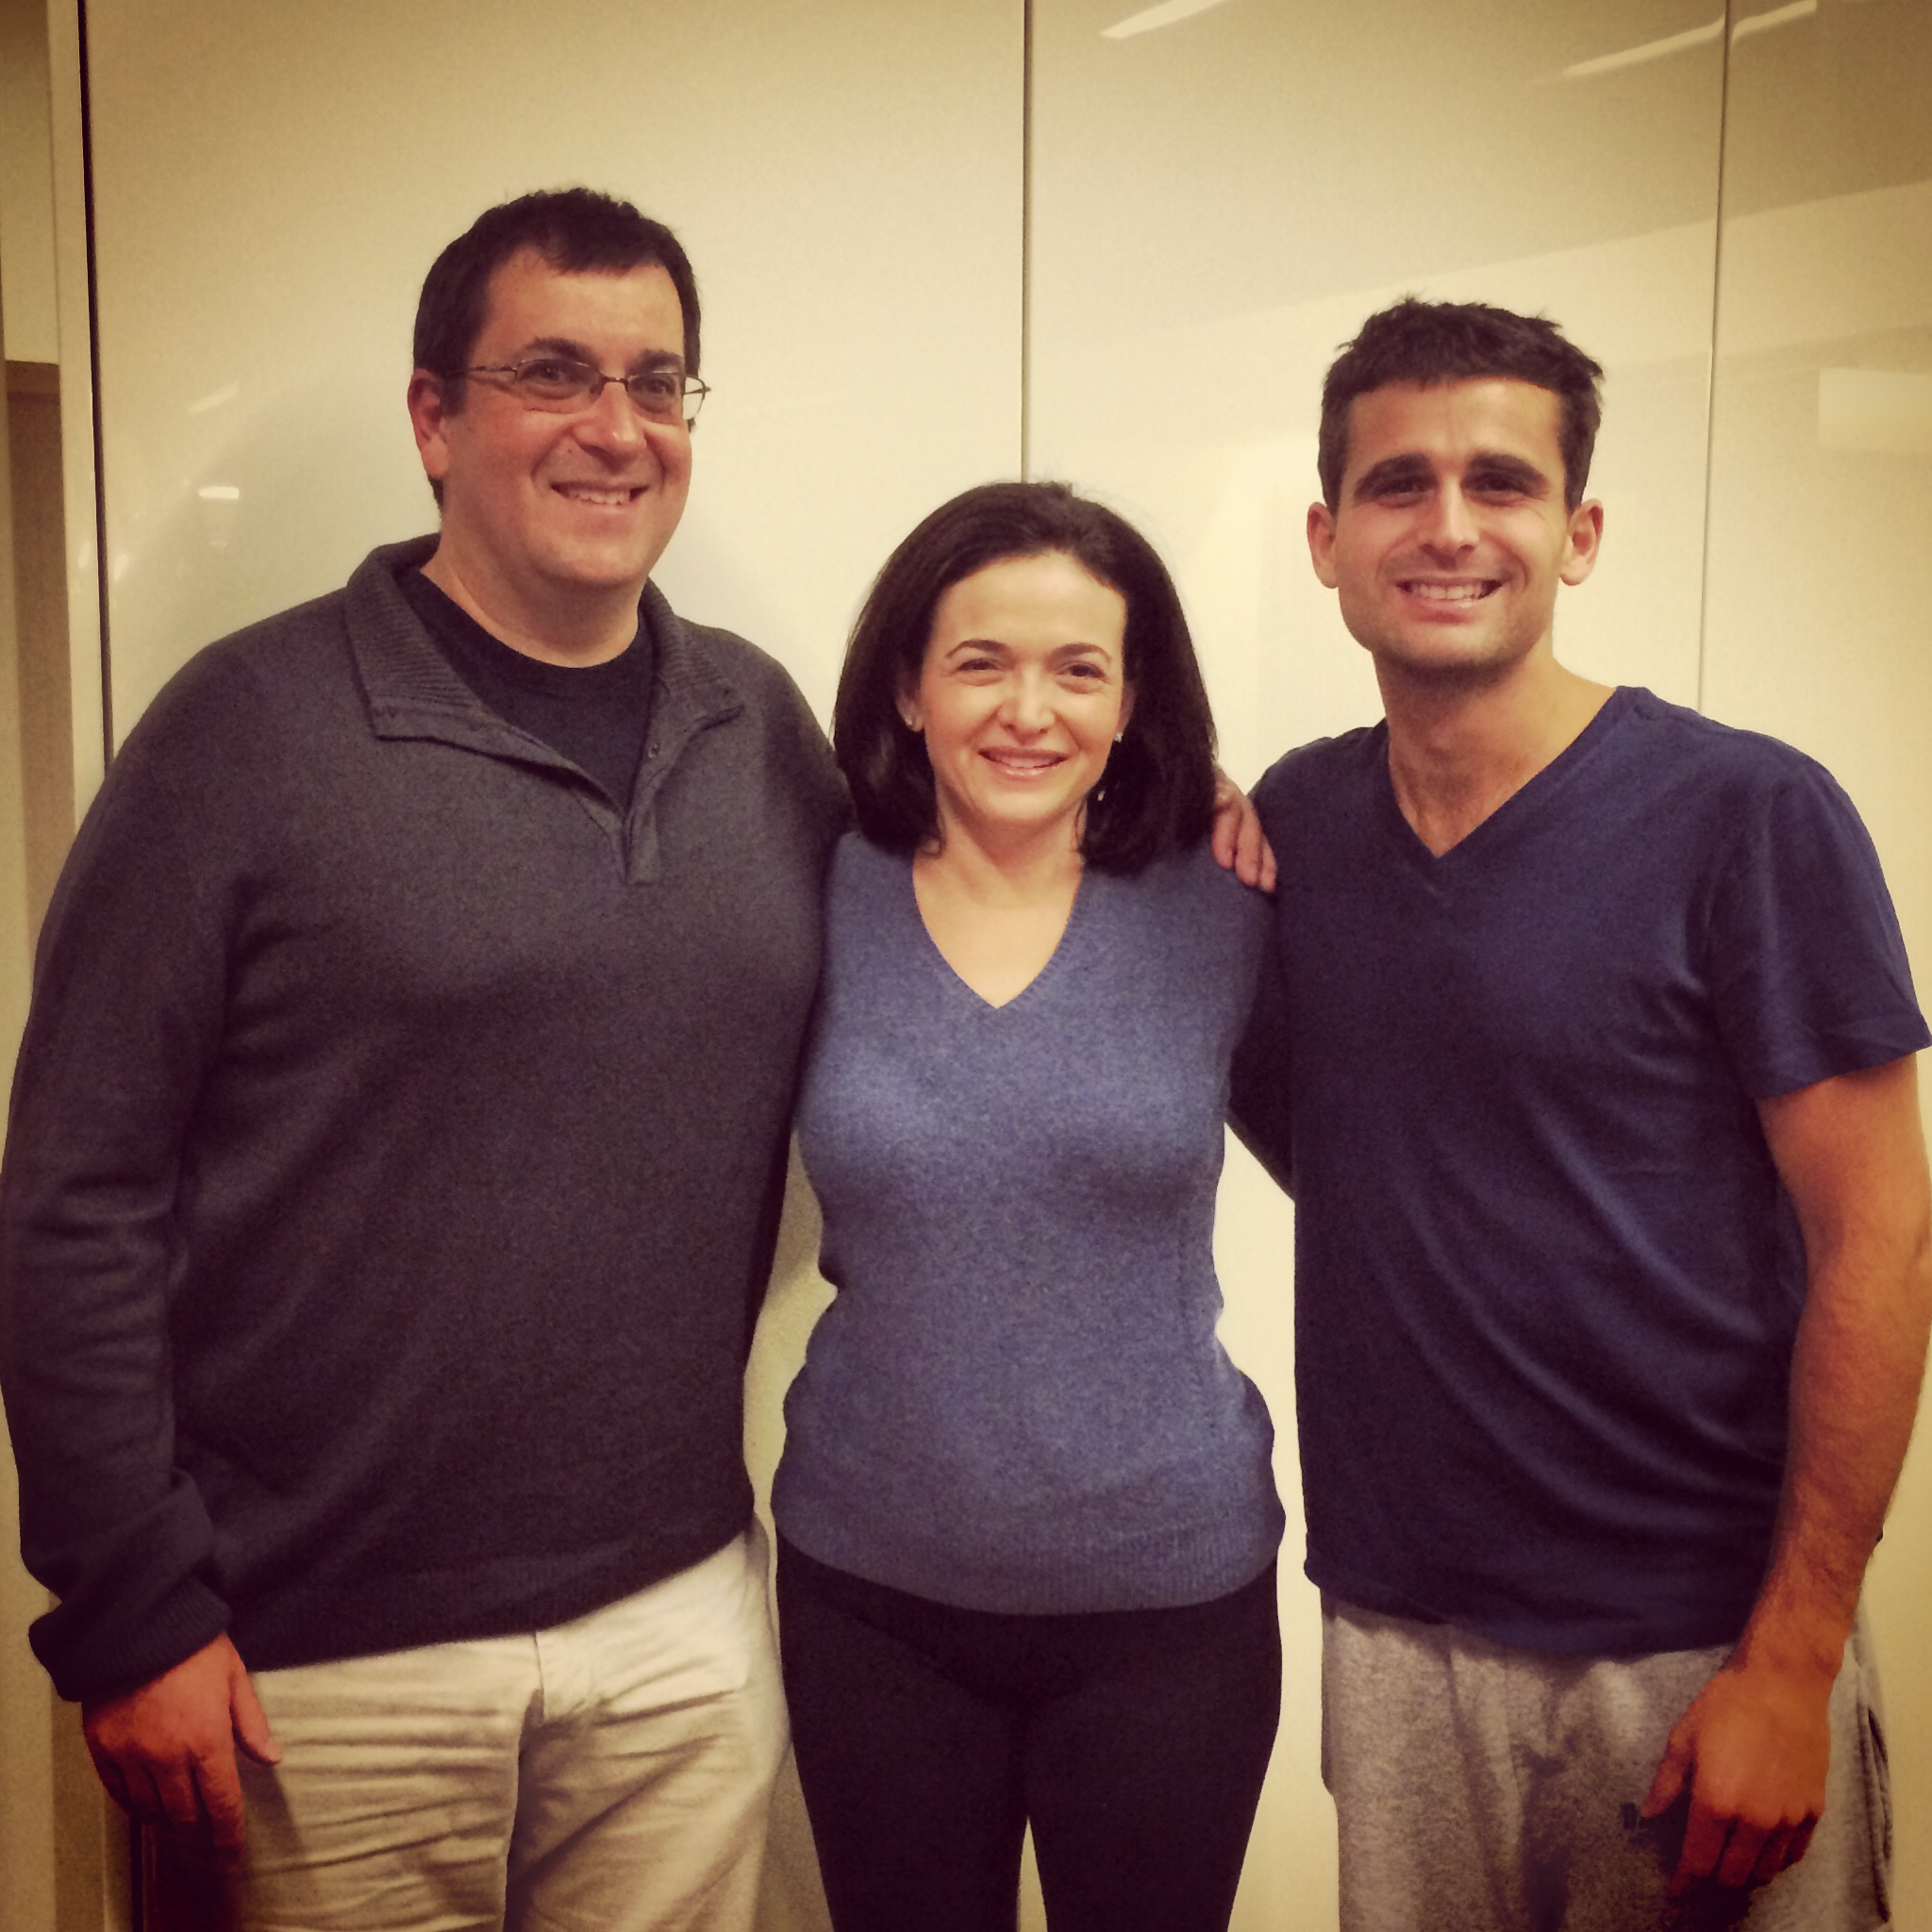 Sheryl Sandberg and Dave Goldberg / Menlo Park, California